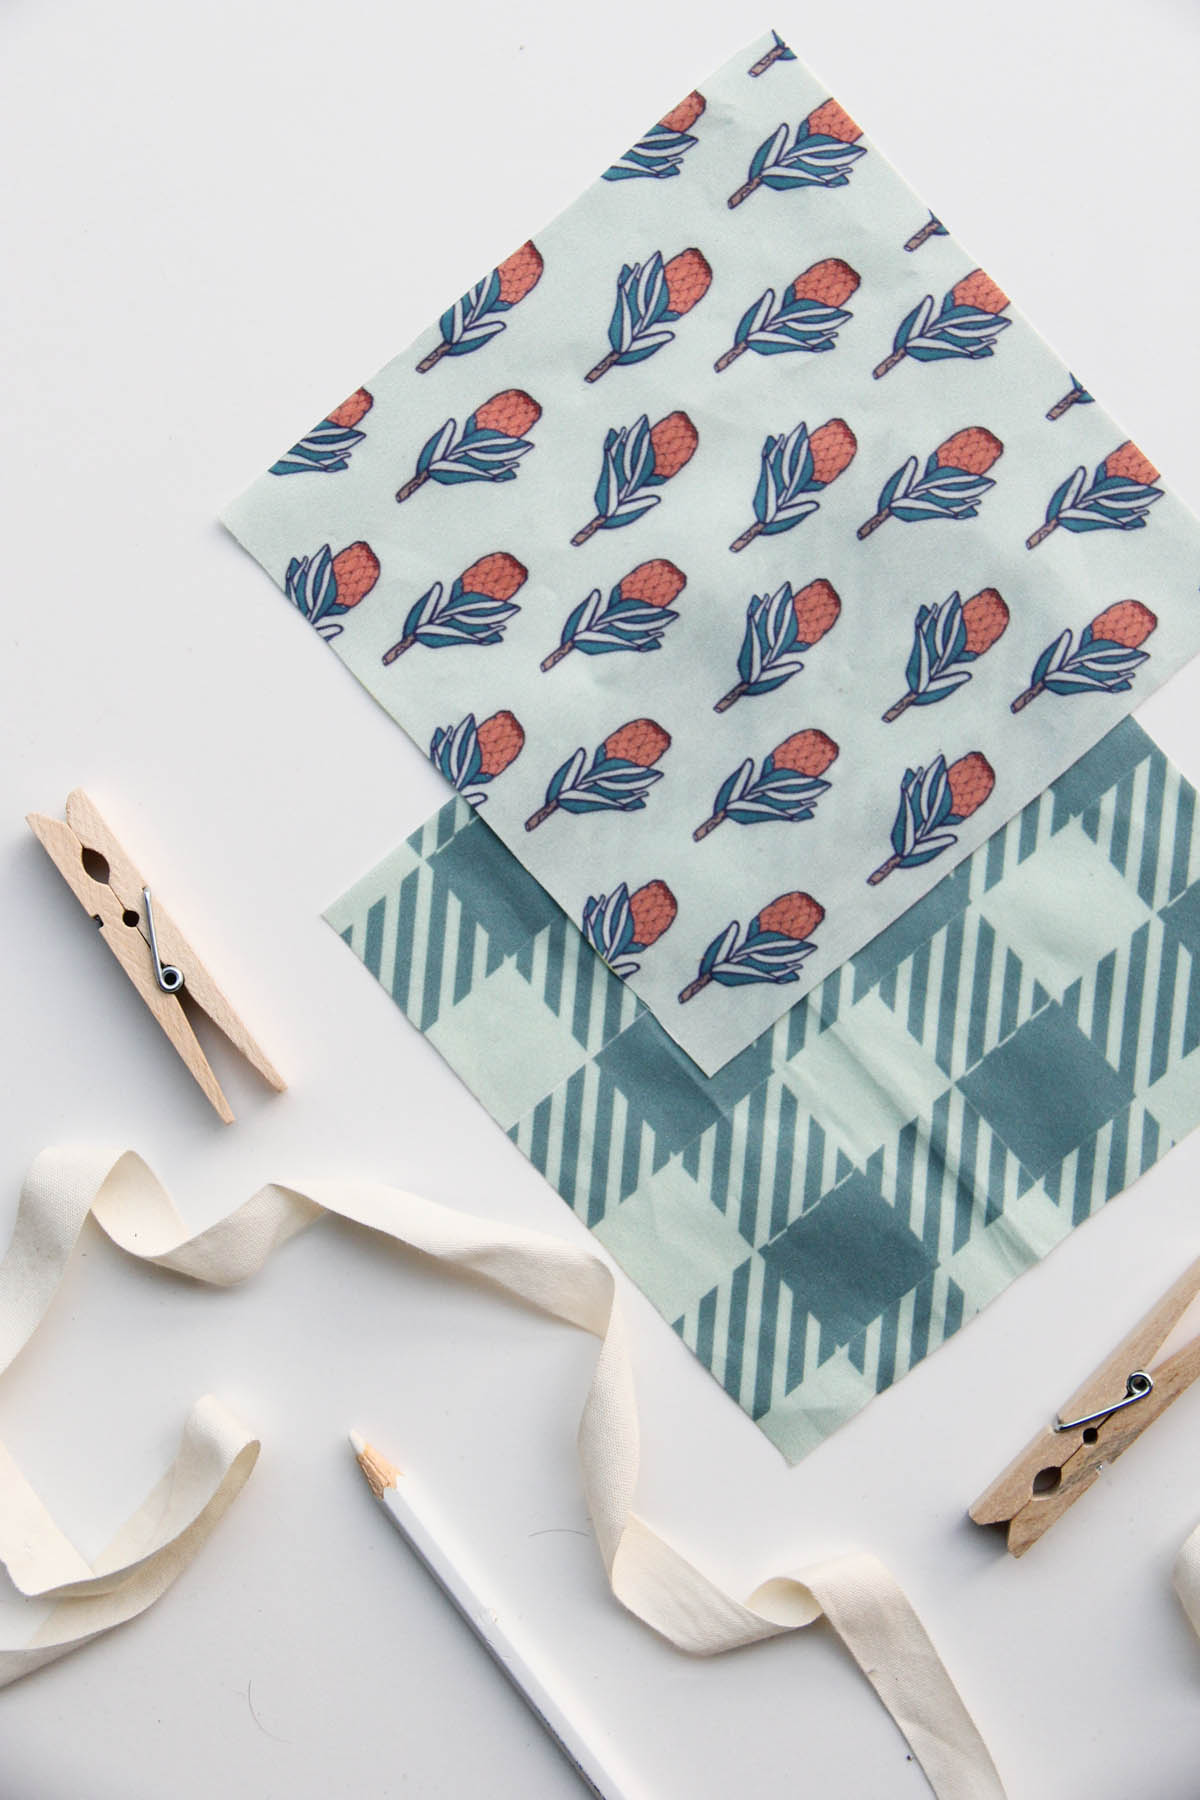 Protea Picnic: Our Spring Fabric Collection on Spoonflower, Designed by Jessie Tyree Jenness for Root & Branch Paper Co.